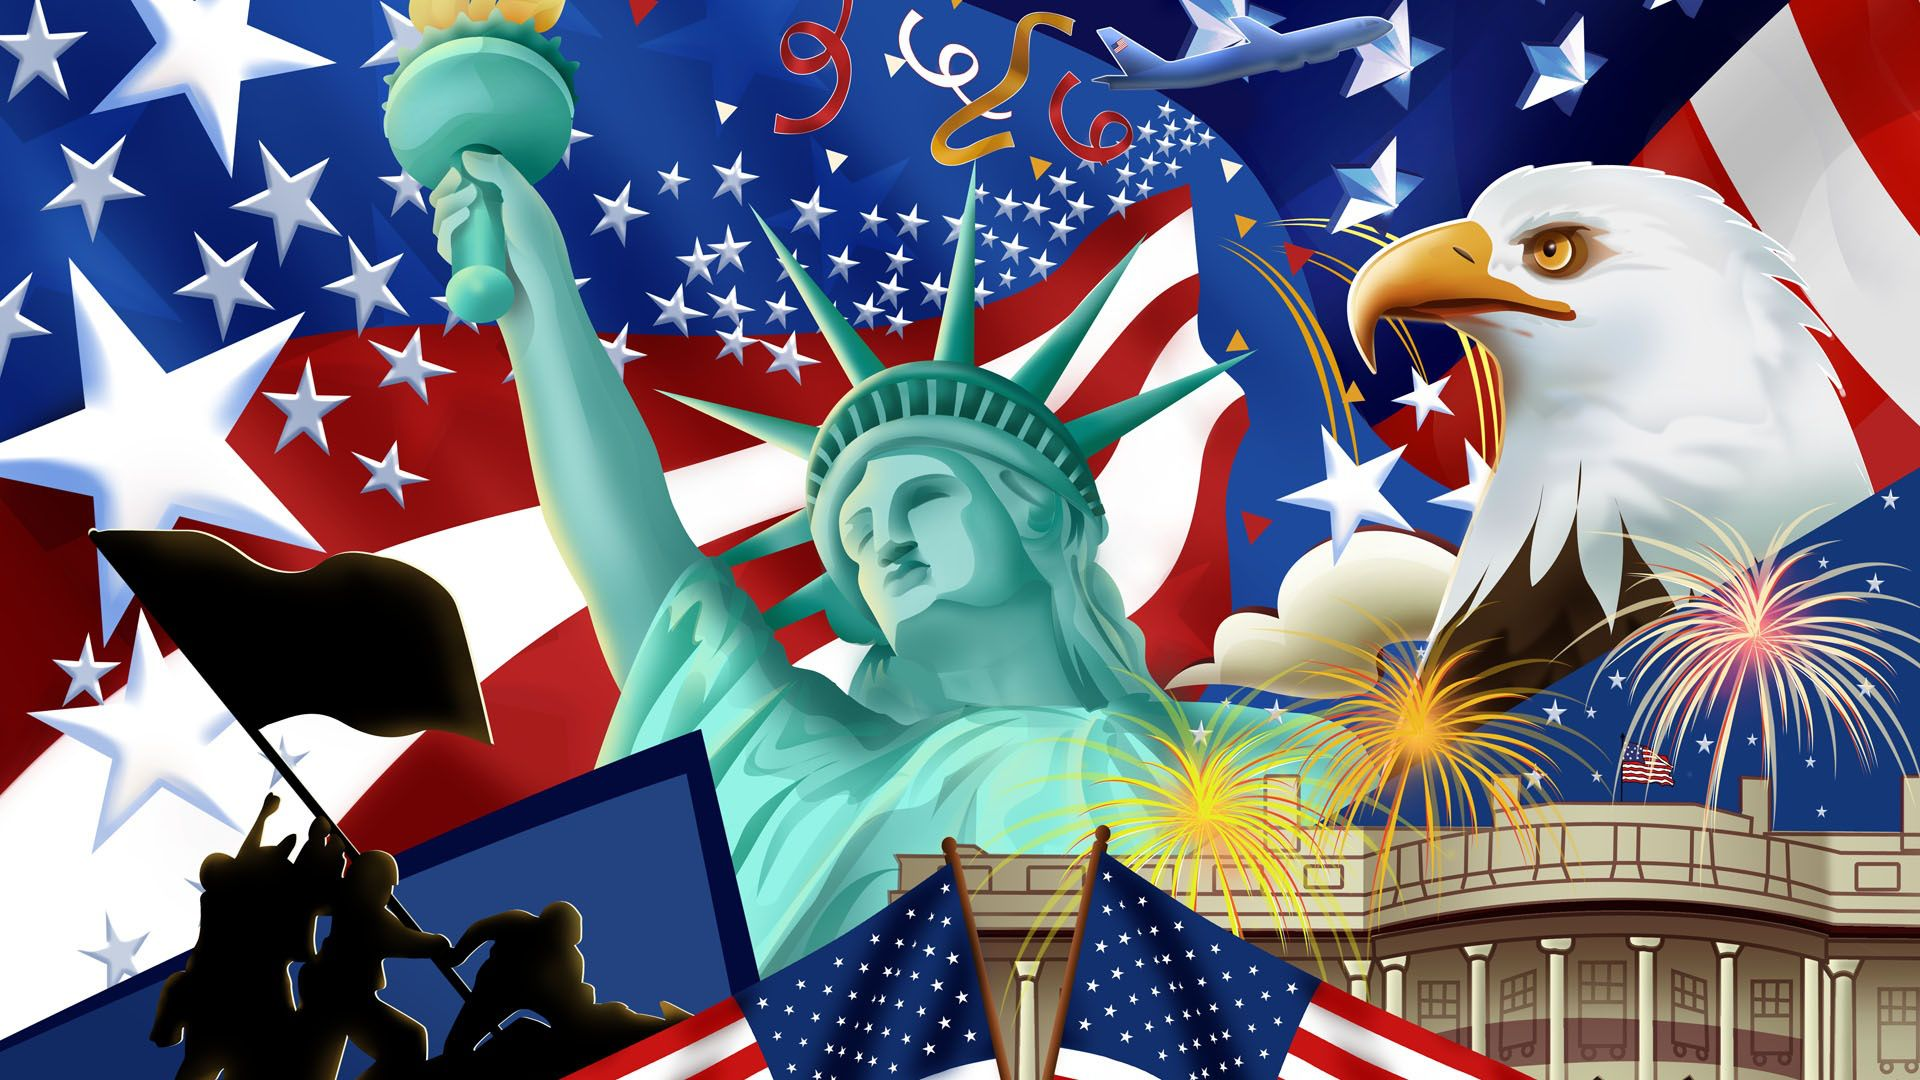 Fourth of July Wallpaper Independence Day United States